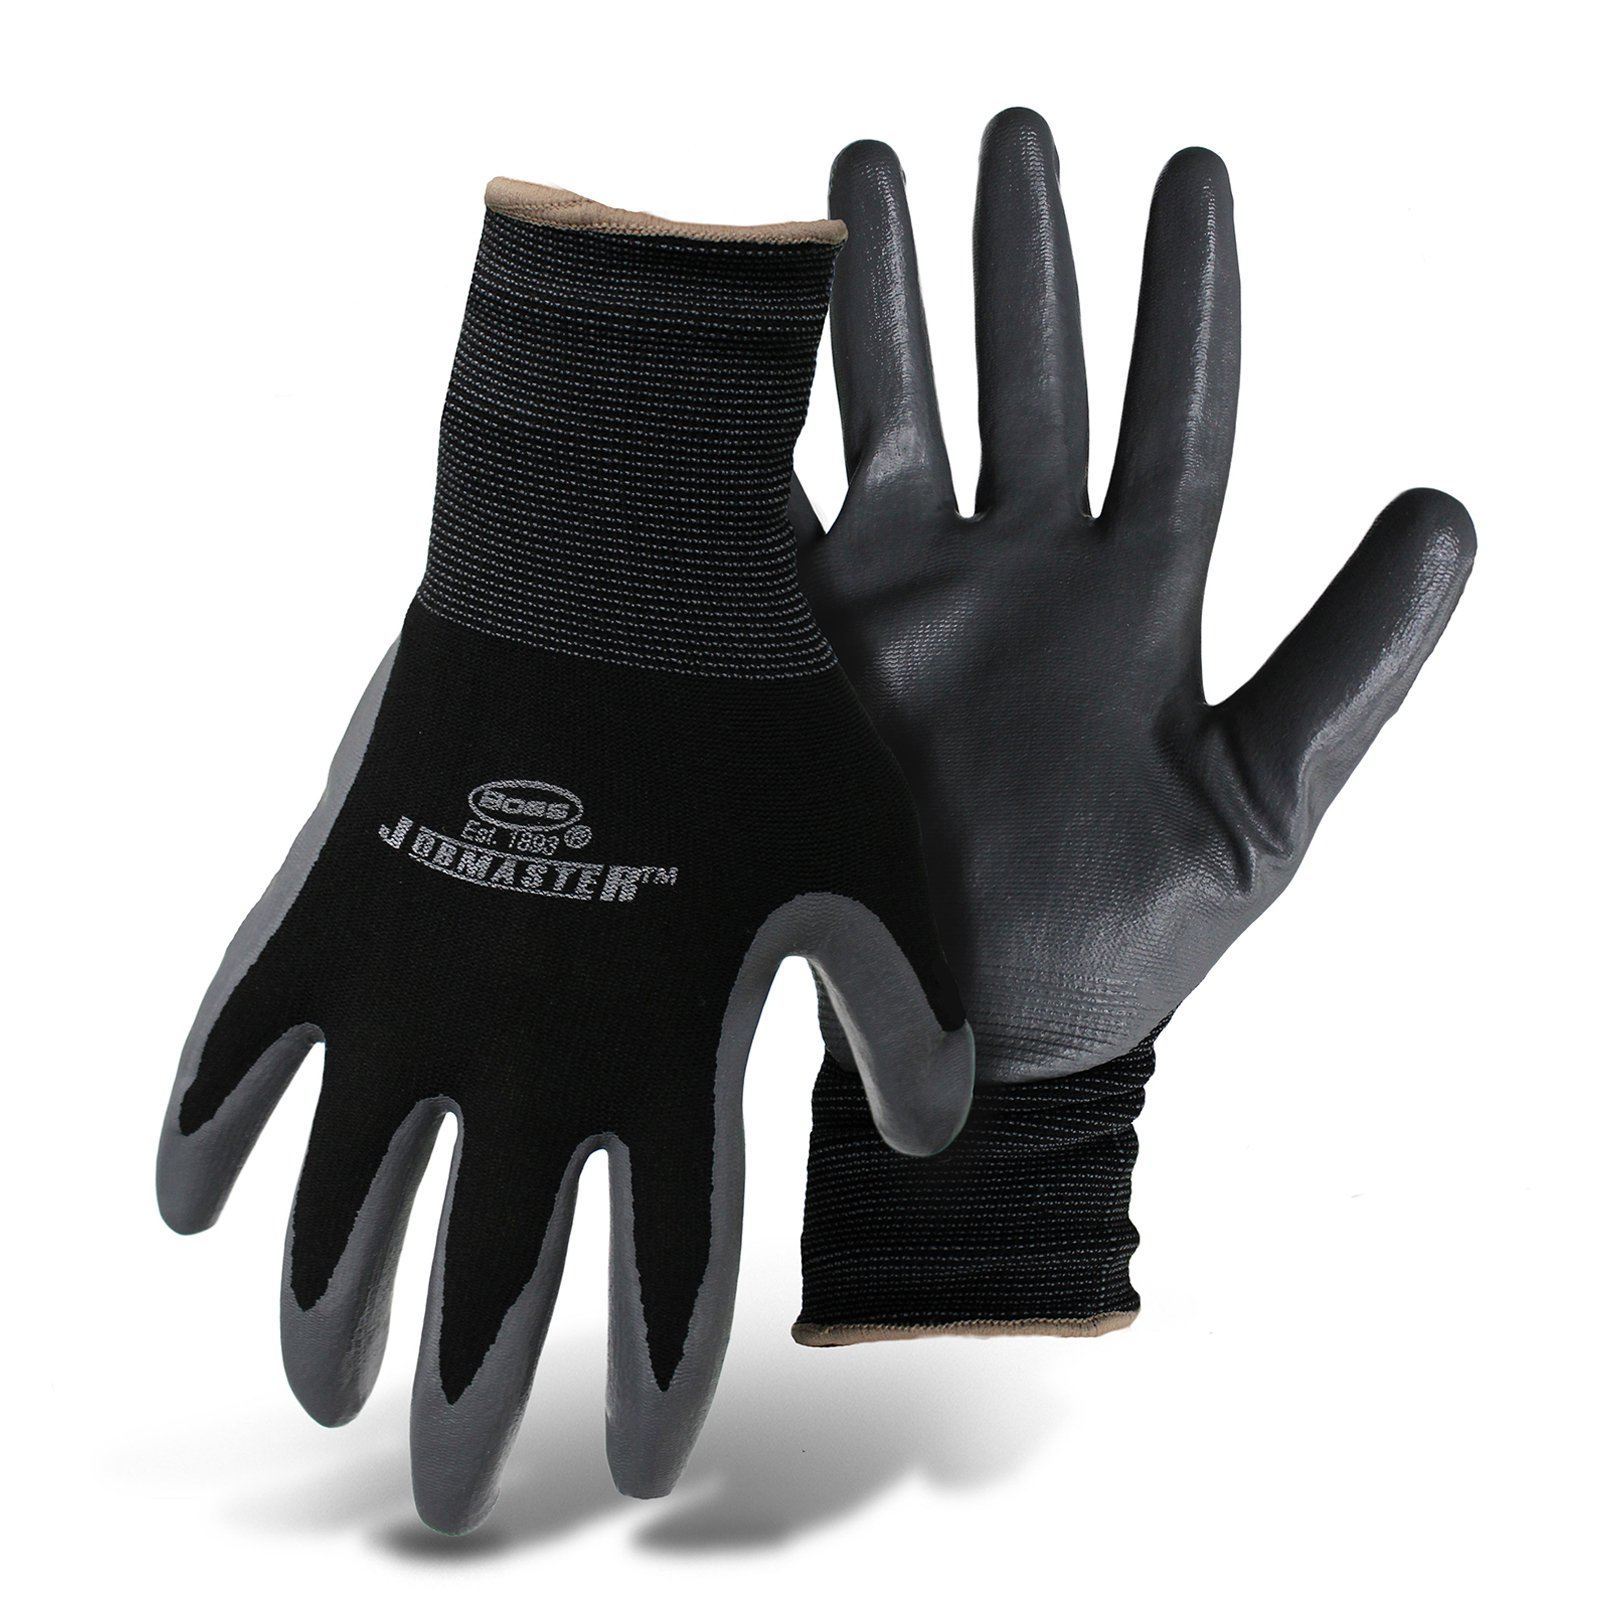 Boss Gloves 8442XL X-Large Black and Gray Nylon With Nitrile Coated Palm Gloves